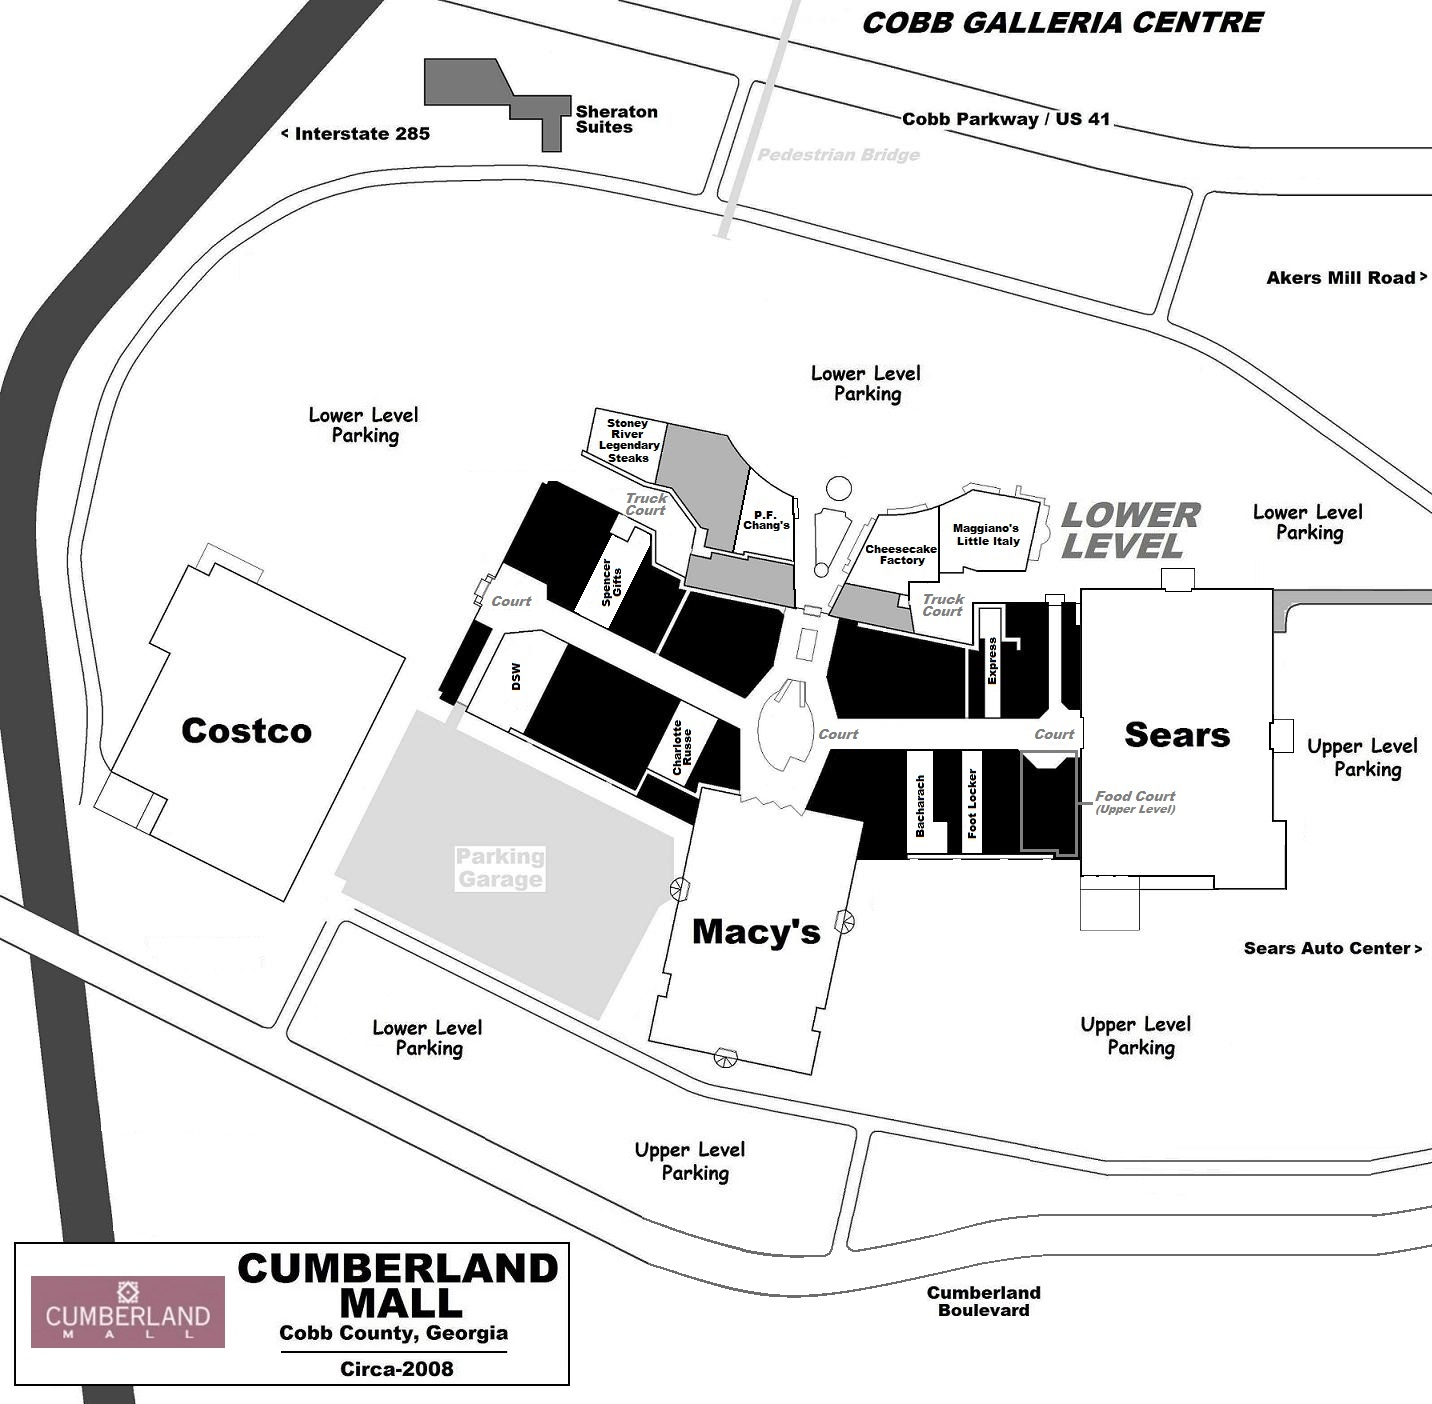 an early 2000s vintage site plan of cobb county s cumberland as one can see the penney s and davison s anchors have been surgically removed and replaced